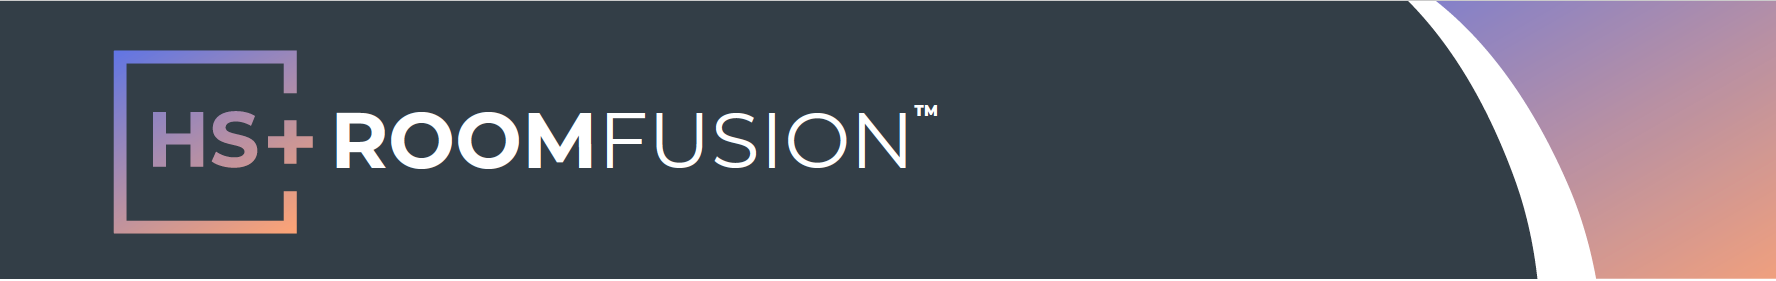 Hypersign Roomfusion banner